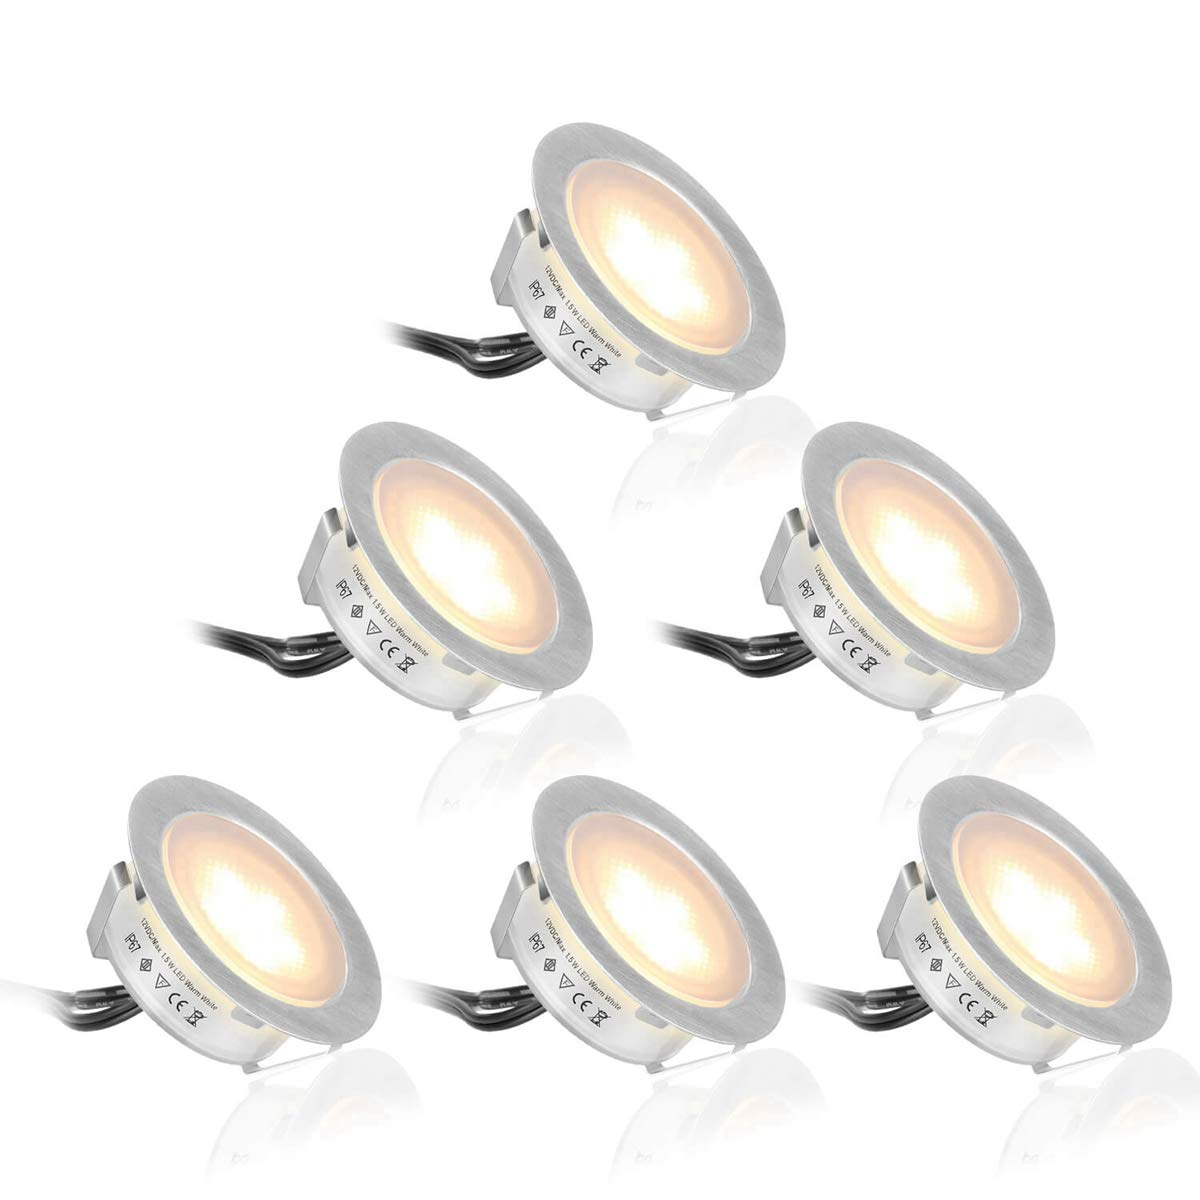 SMY 6 Pack(Upgrade Version) Recessed LED Deck Lights Kit φ55mm, in Ground Outdoor LED Landscape Lighting Waterproof IP67,12V Low Voltage for Garden,Yard Steps,Stair,Patio,Pool Deck,Kitchen Decoration by SMY